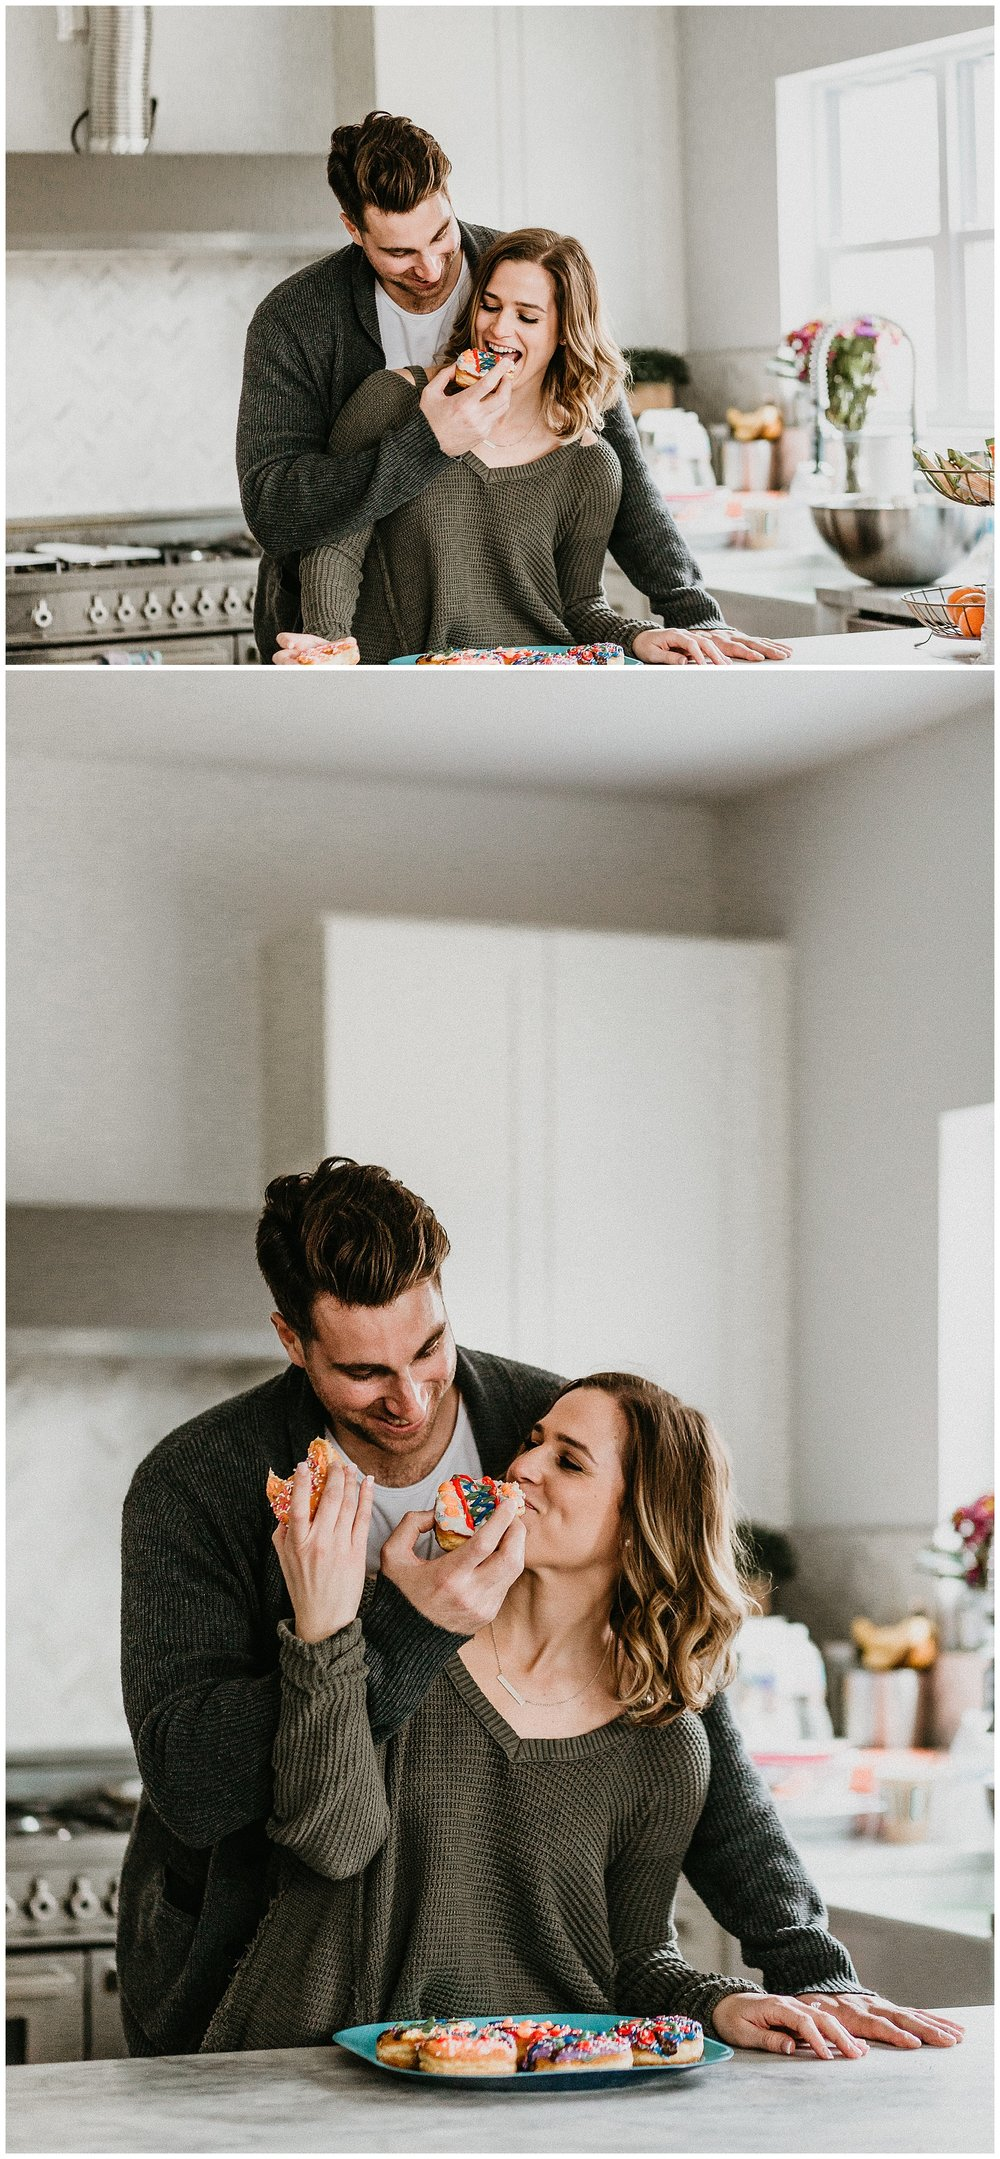 Warm and Cozy Winter Lifestyle In Home Engagement Session_0042.jpg